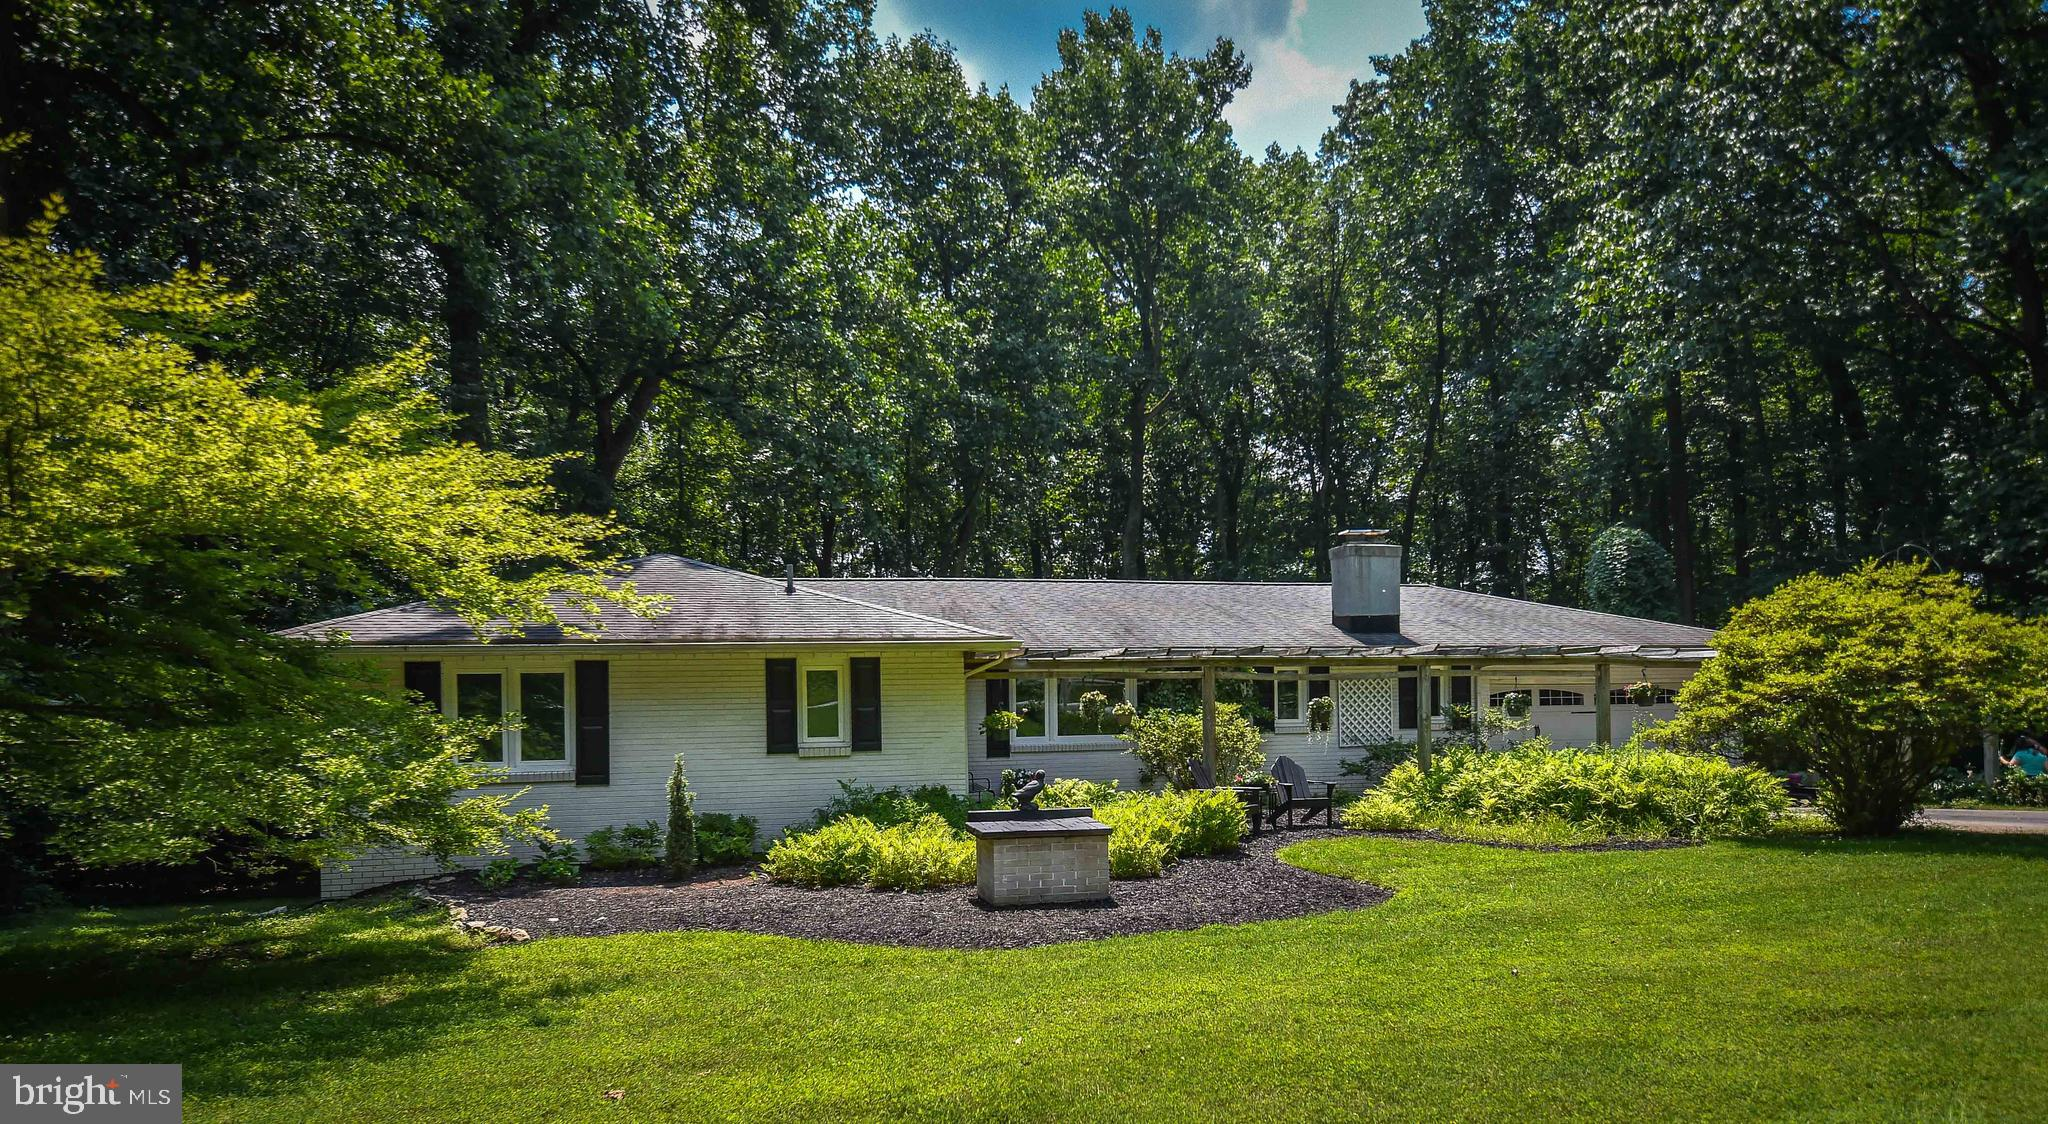 Welcome to Blackberry Lane and Charlestown township.  This is an exceptionally well maintained ranch home sitting on two plus acres that is now ready for its new owners.   This home boasts a maintenance free exterior, new central air system (2020), new how water heater(2021), updated Heater (2019),  Sylvan swimming pool, and 2 car garage.  Single floor living at its finest  with a large living room with hardwood floor and expansive picture window offering natural light and views of mother nature.   There is a wonderful primary bedroom with hardwoods and full on suite bathroom.  Two additional bedrooms that are both very functional in size, one of which overlooks the expansive back yard.   The dining room over looks the back deck that has both a covered area and large area to enjoy the sun while overlooking the pool.  The kitchen has lovely counter space and has recently been updated  with a new stove  and refrigerator.  Off the kitchen there is a sizable living room that is equipped with a fireplace and sufficient room to offer a breakfast room or dedicated office.   Downstairs you will find a partially finished  basement ready for fun and also tons of storage.  The home is located in Charlestown Twp which provides and incredible quality of life.  Charlestown has preserved almost 40% of the township  as open space  to protect its rural make up while being delicately tucked between  both Malvern & Phoenixville.  The property is in walking distance  to Brightside farm park, moments from dining and entertainment,  all while being in the shadows of major employers, commuting routes, and the Great Valley School System.